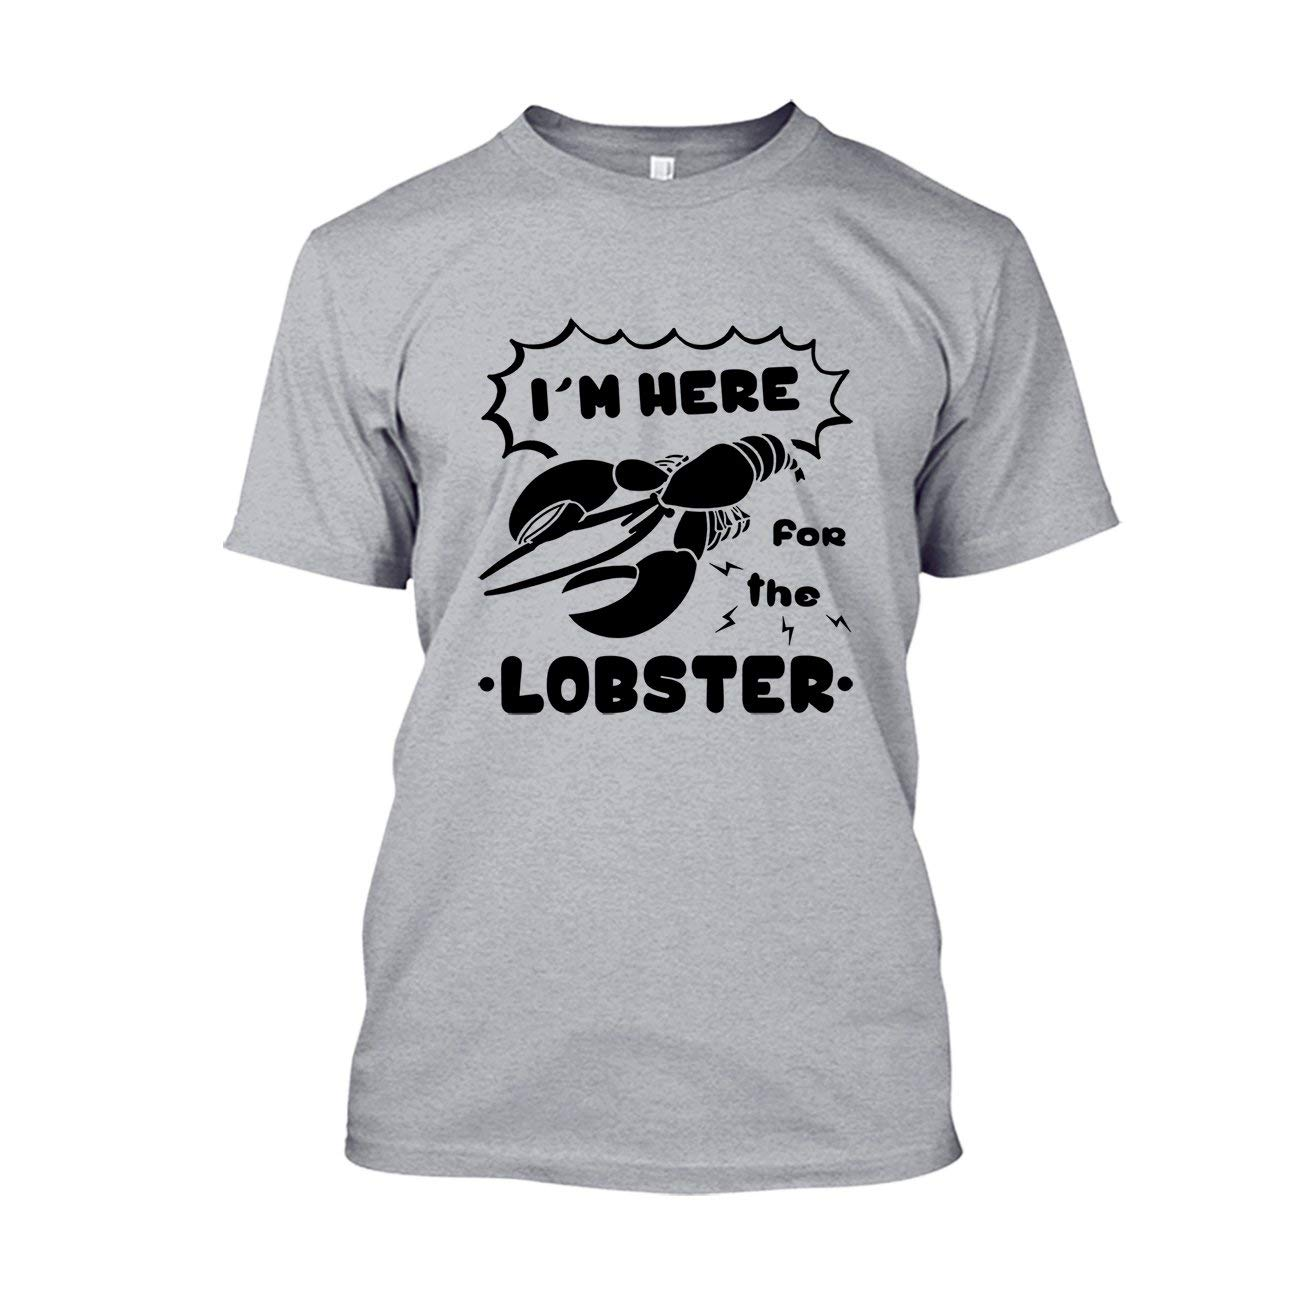 02cadfbbf Amazon.com: Are Blue I'm Here for The Lobster Shirt, Long Sleeve Shirt:  Clothing